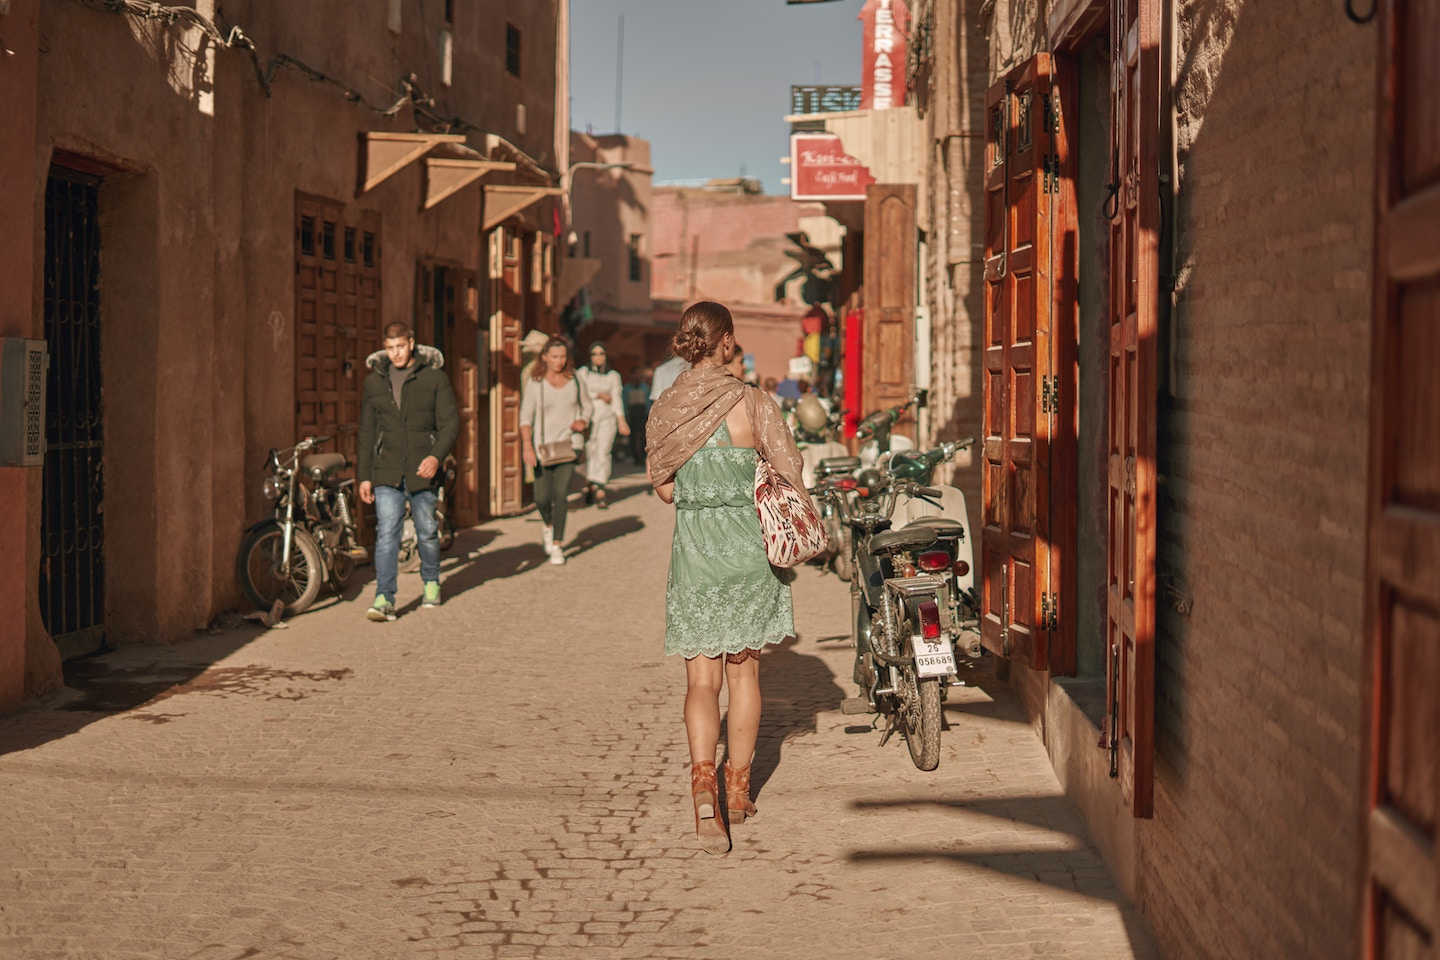 WHAT TO EXPECT DATING ABROAD